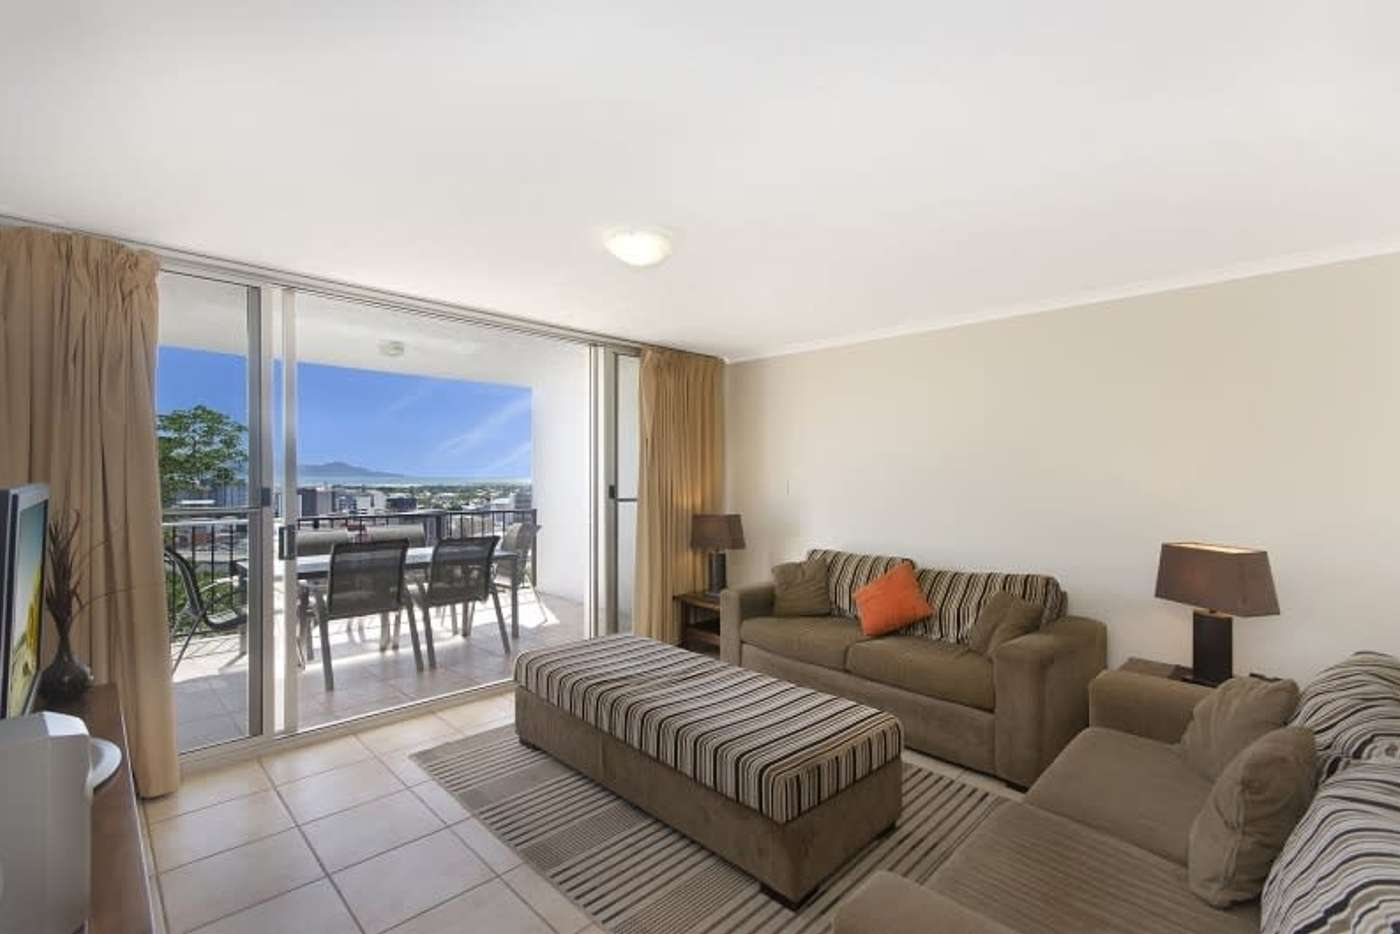 Main view of Homely apartment listing, 10/209 Wills Street, Townsville City QLD 4810